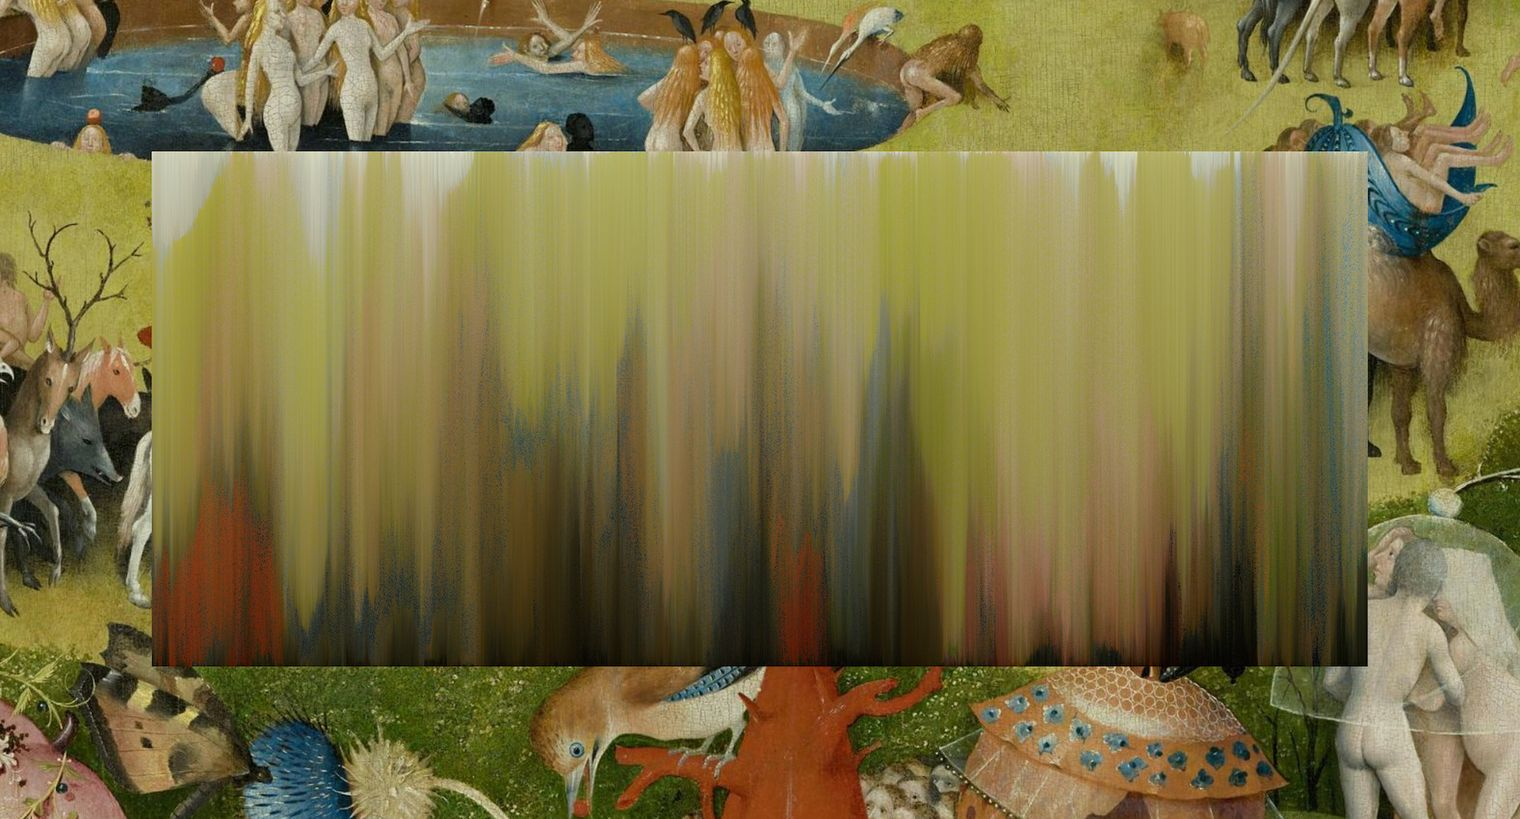 crop from the garden of earthly delights with a pixel sorted color gradient